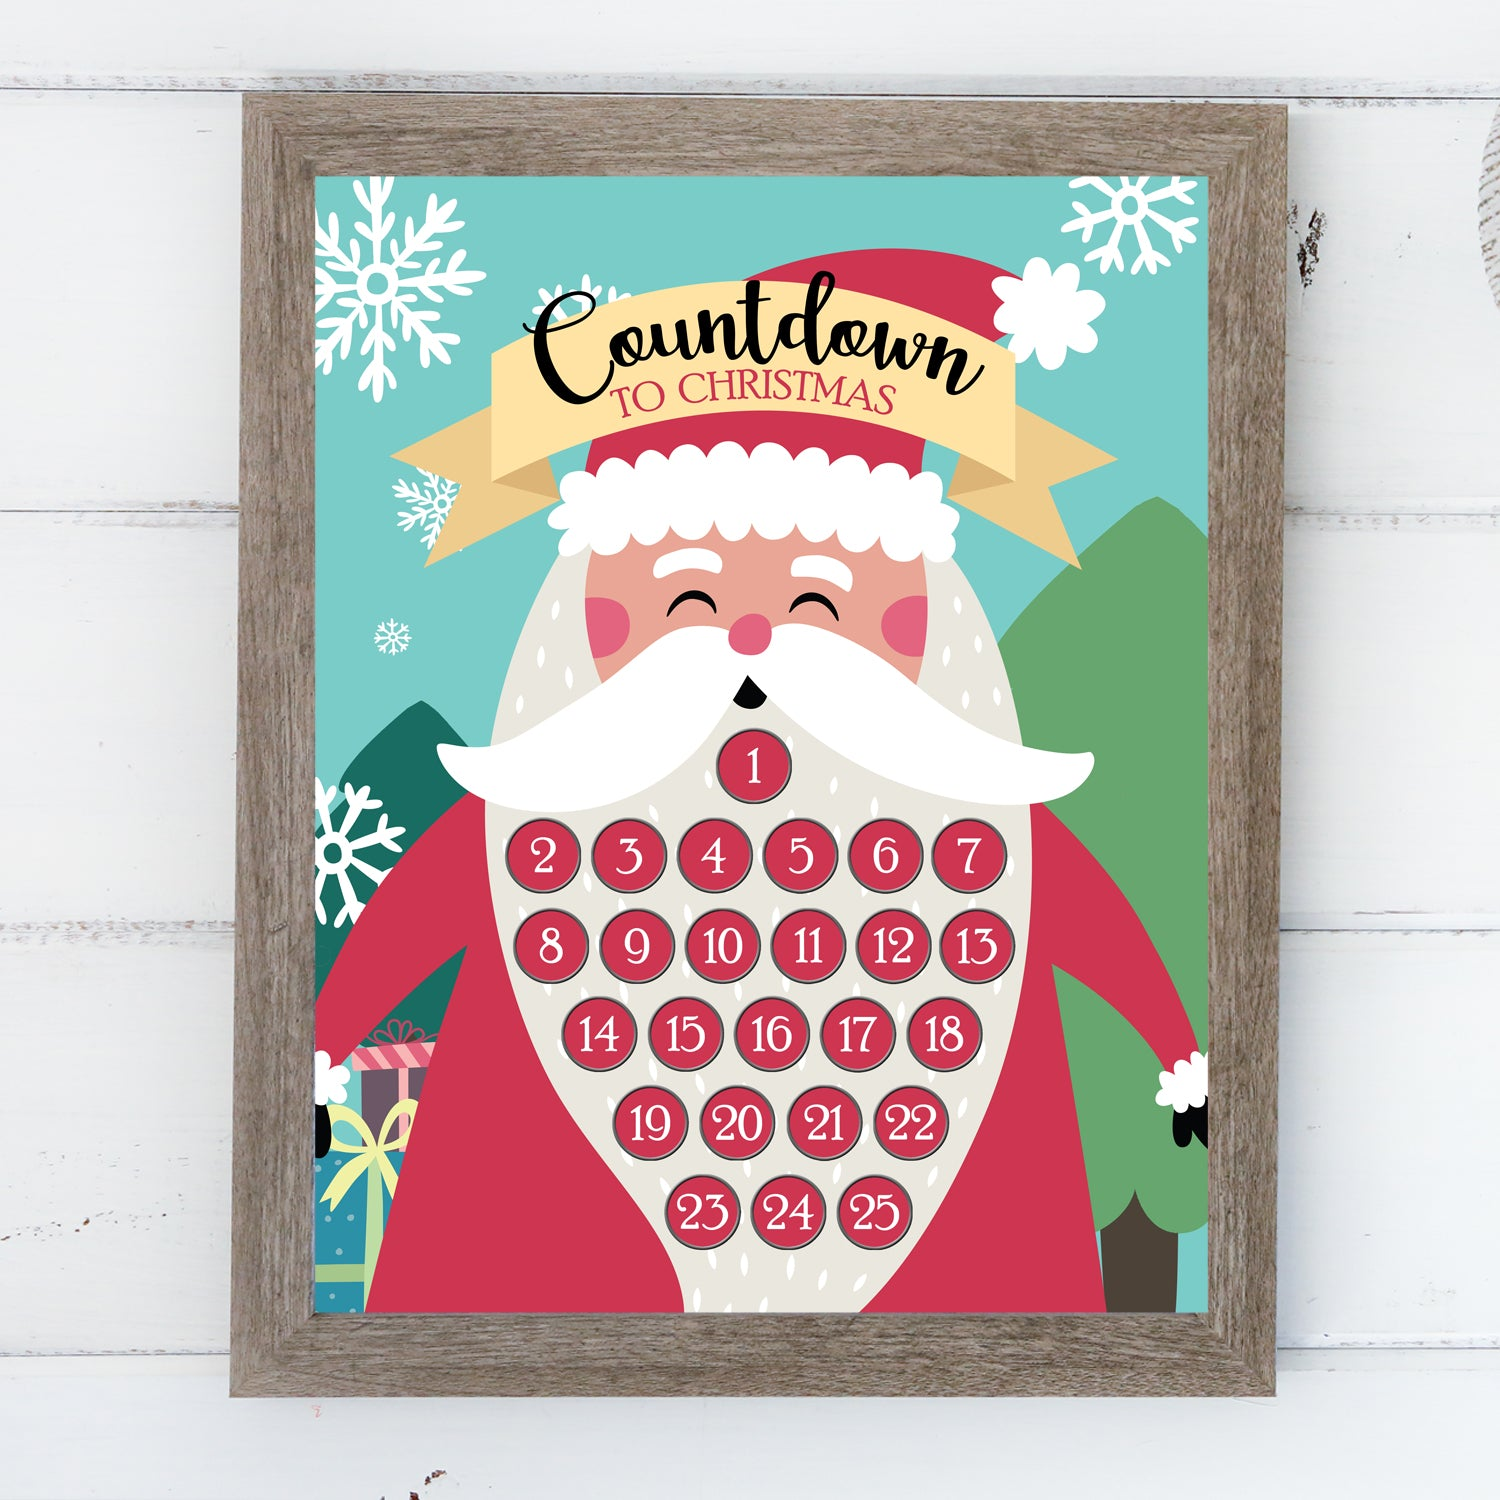 Additional Insert: Countdown to Christmas - Santa